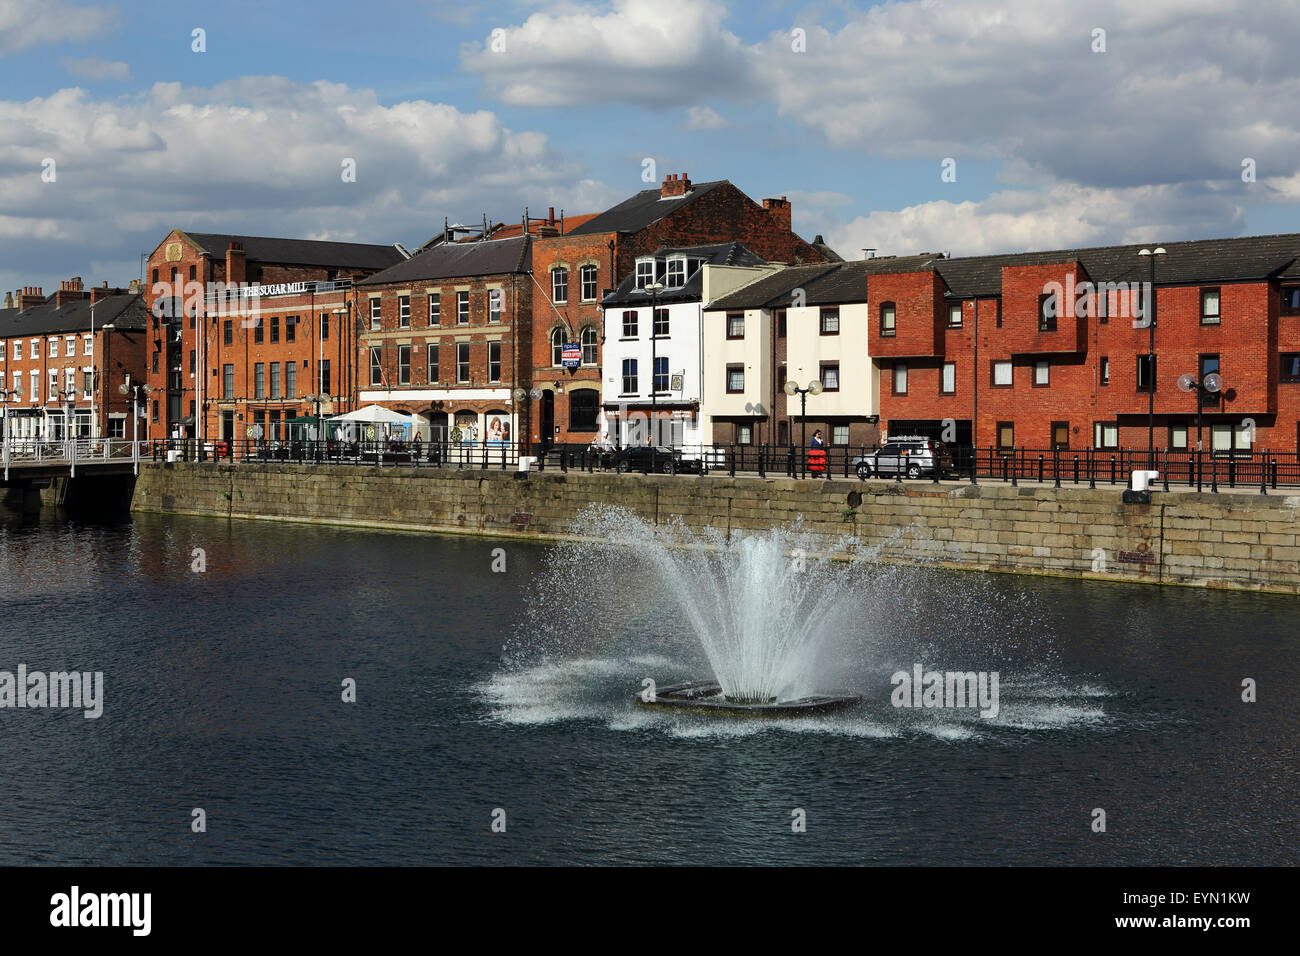 A fountain sprays water at Hull Marina in Hull, England. Former warehouses stand by the waterfront. - Stock Image